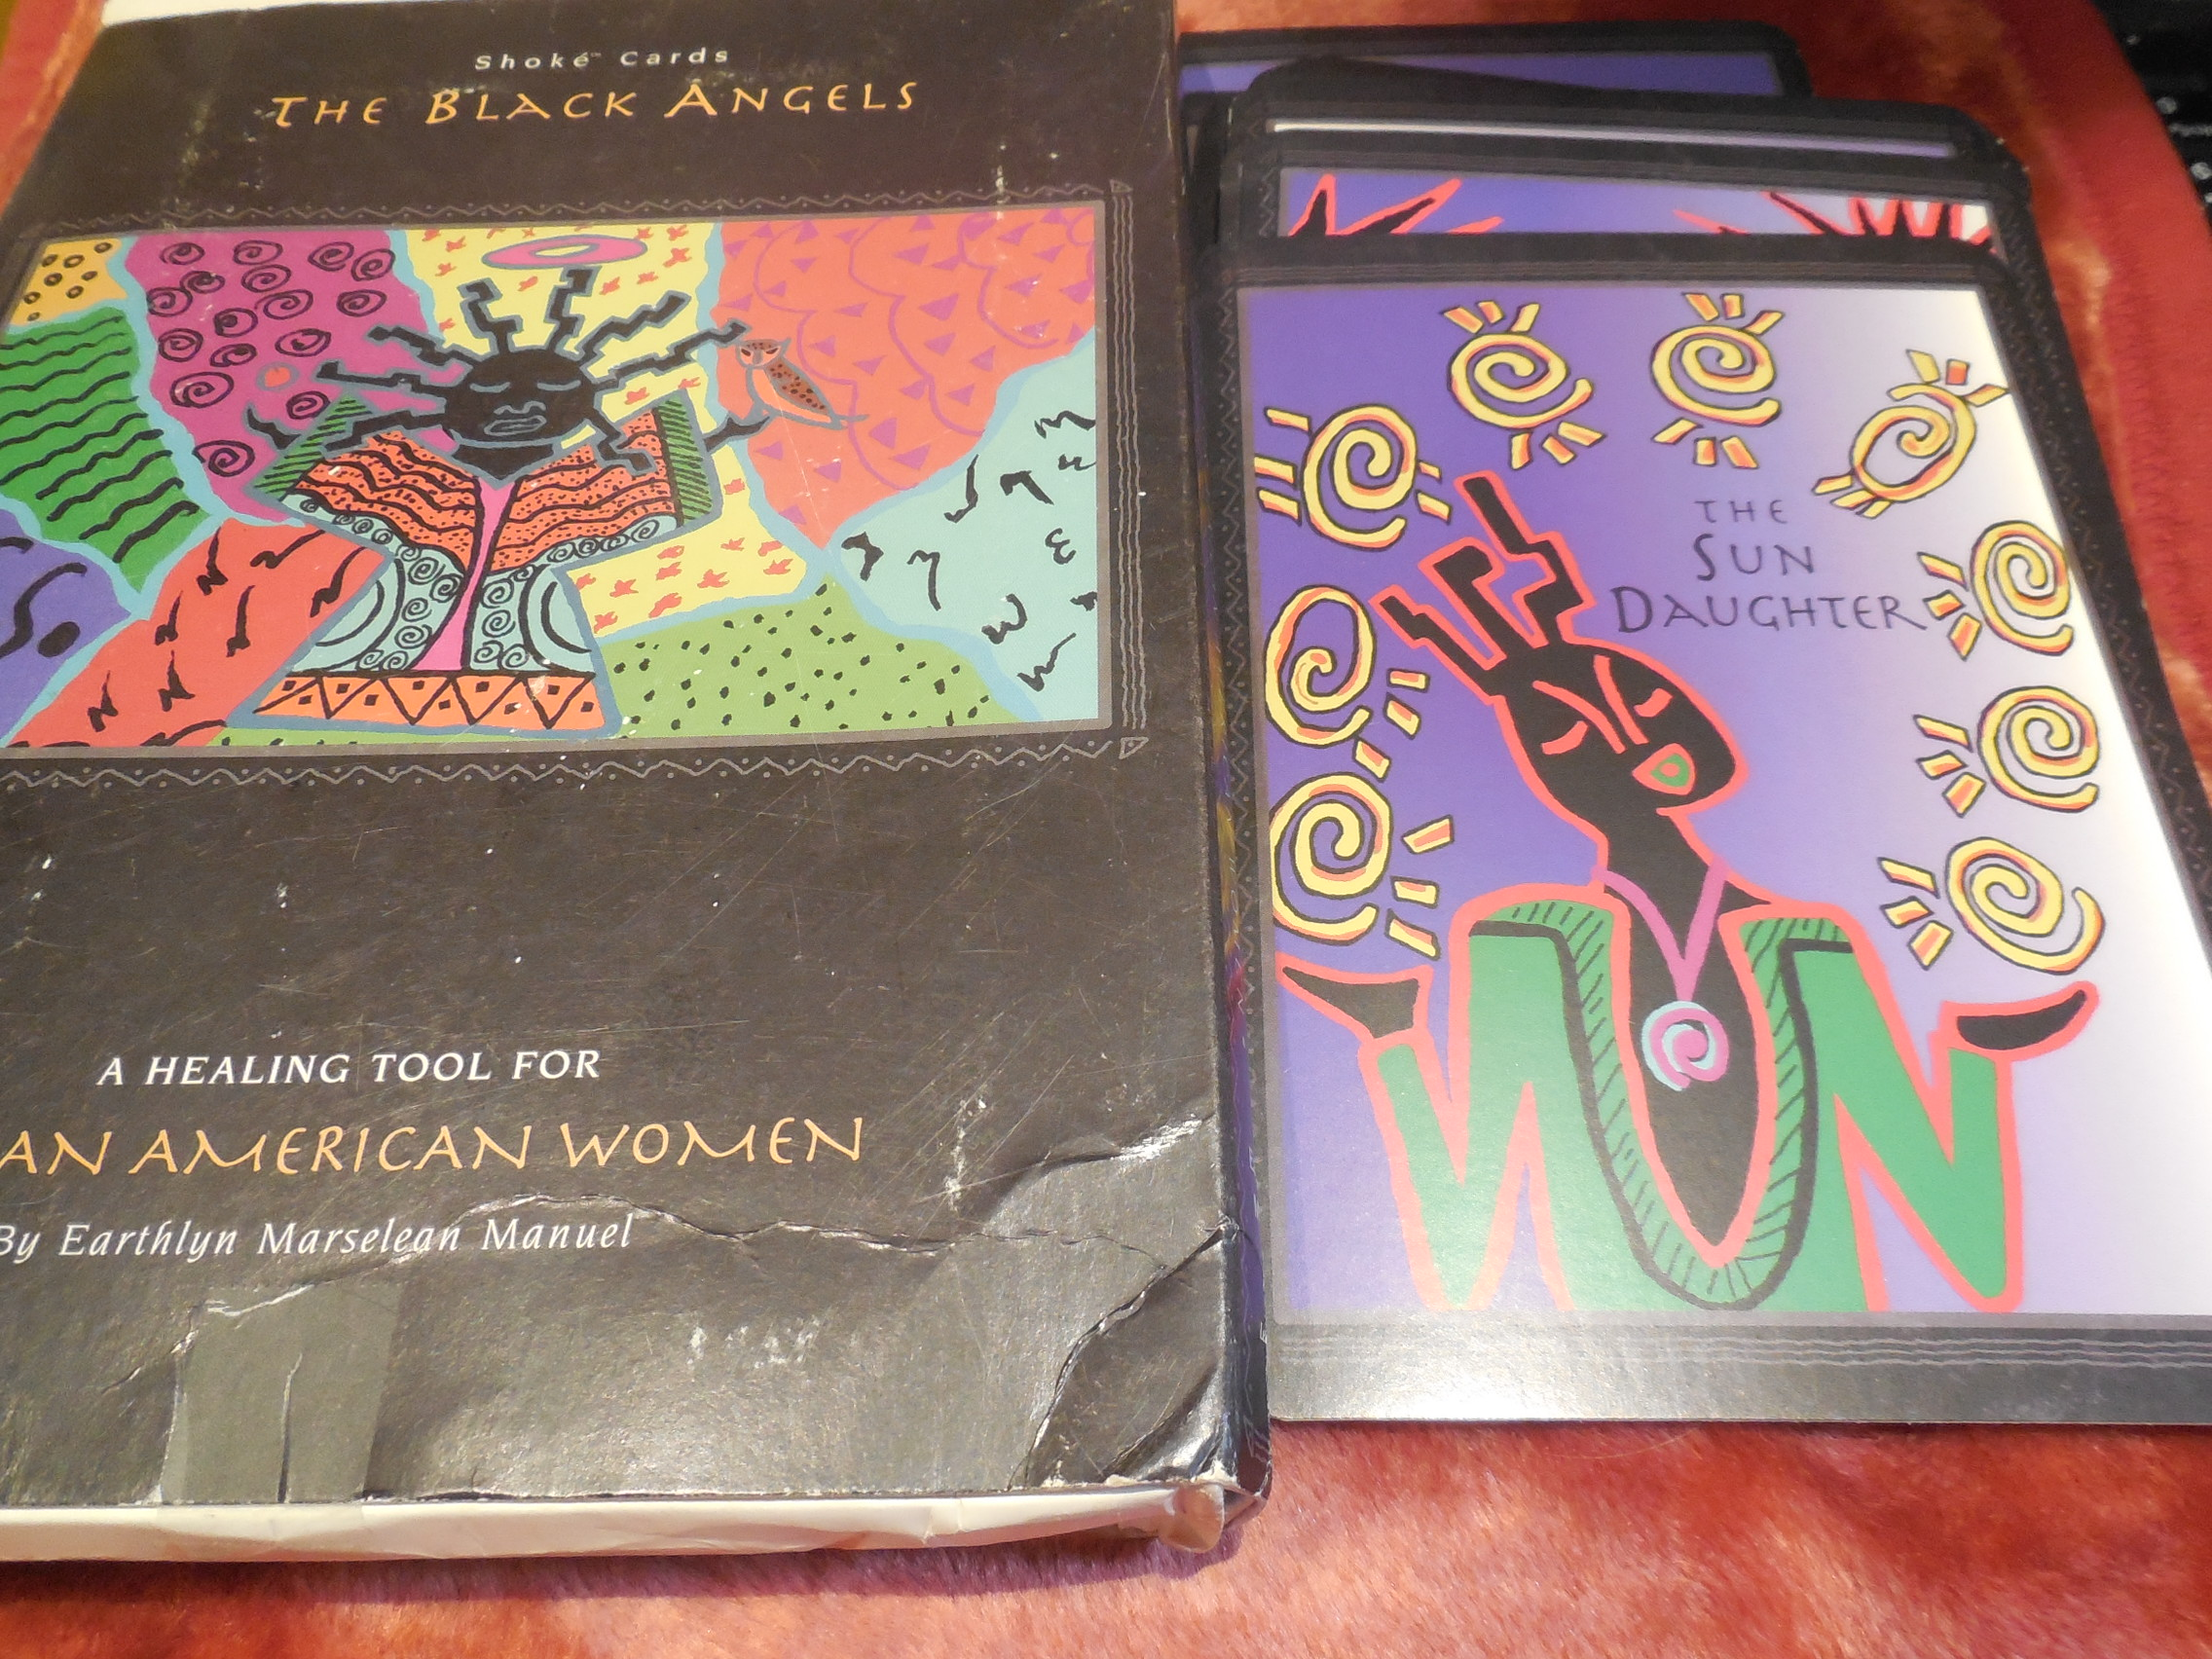 Image for The Black Angels: A Healing Tool for African American Women with Book (Shoke Cards)